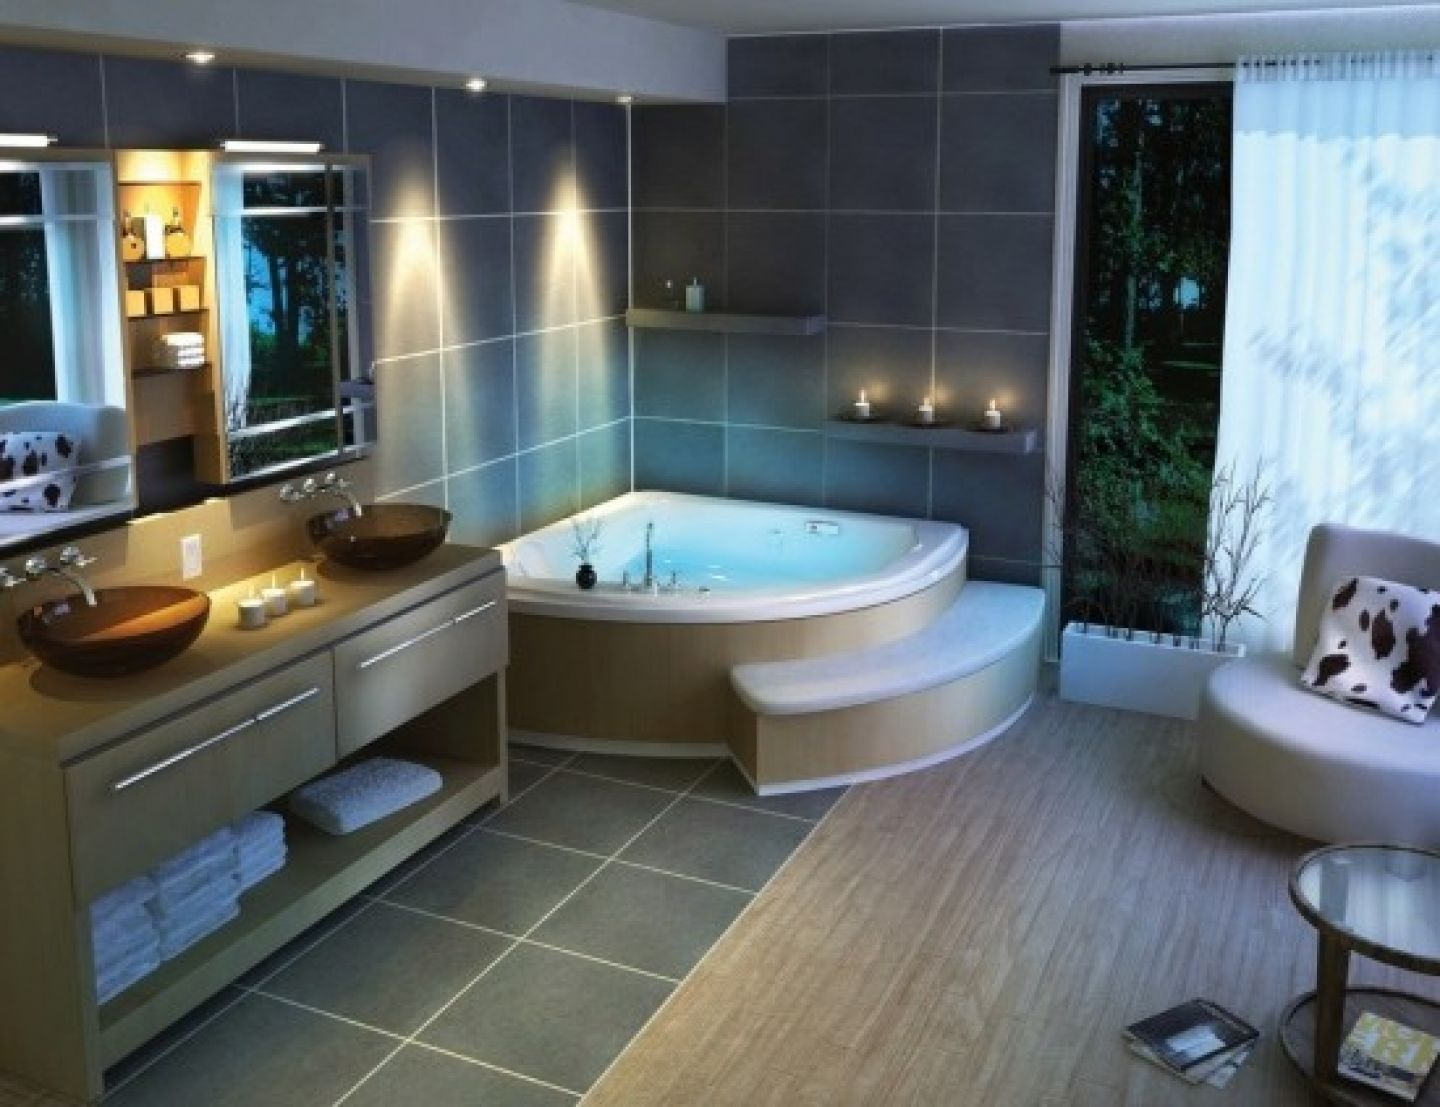 master bathrooms designs 10 most popular bathrooms on pinterest luxedaily design insight from the editors of